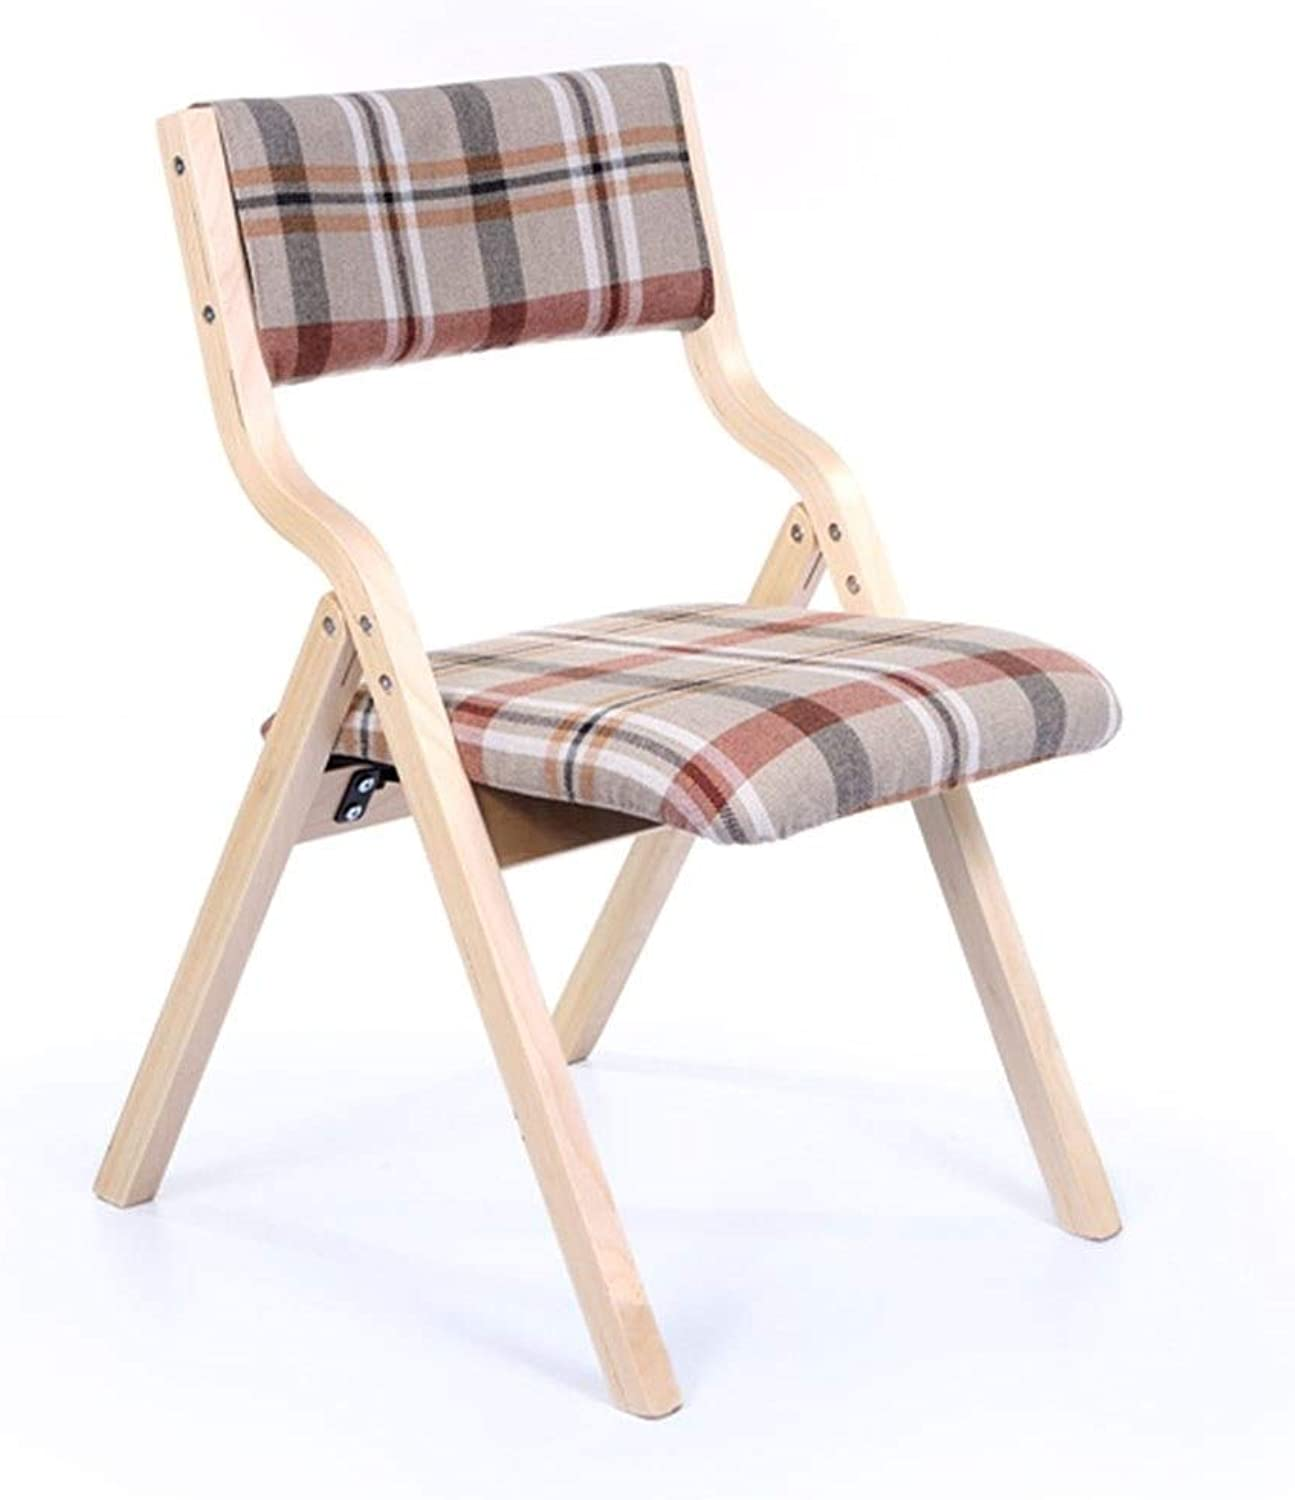 Marvelous Jkpa Chairs Wooden Padded Folding Chair Home Modern Nordic Download Free Architecture Designs Itiscsunscenecom